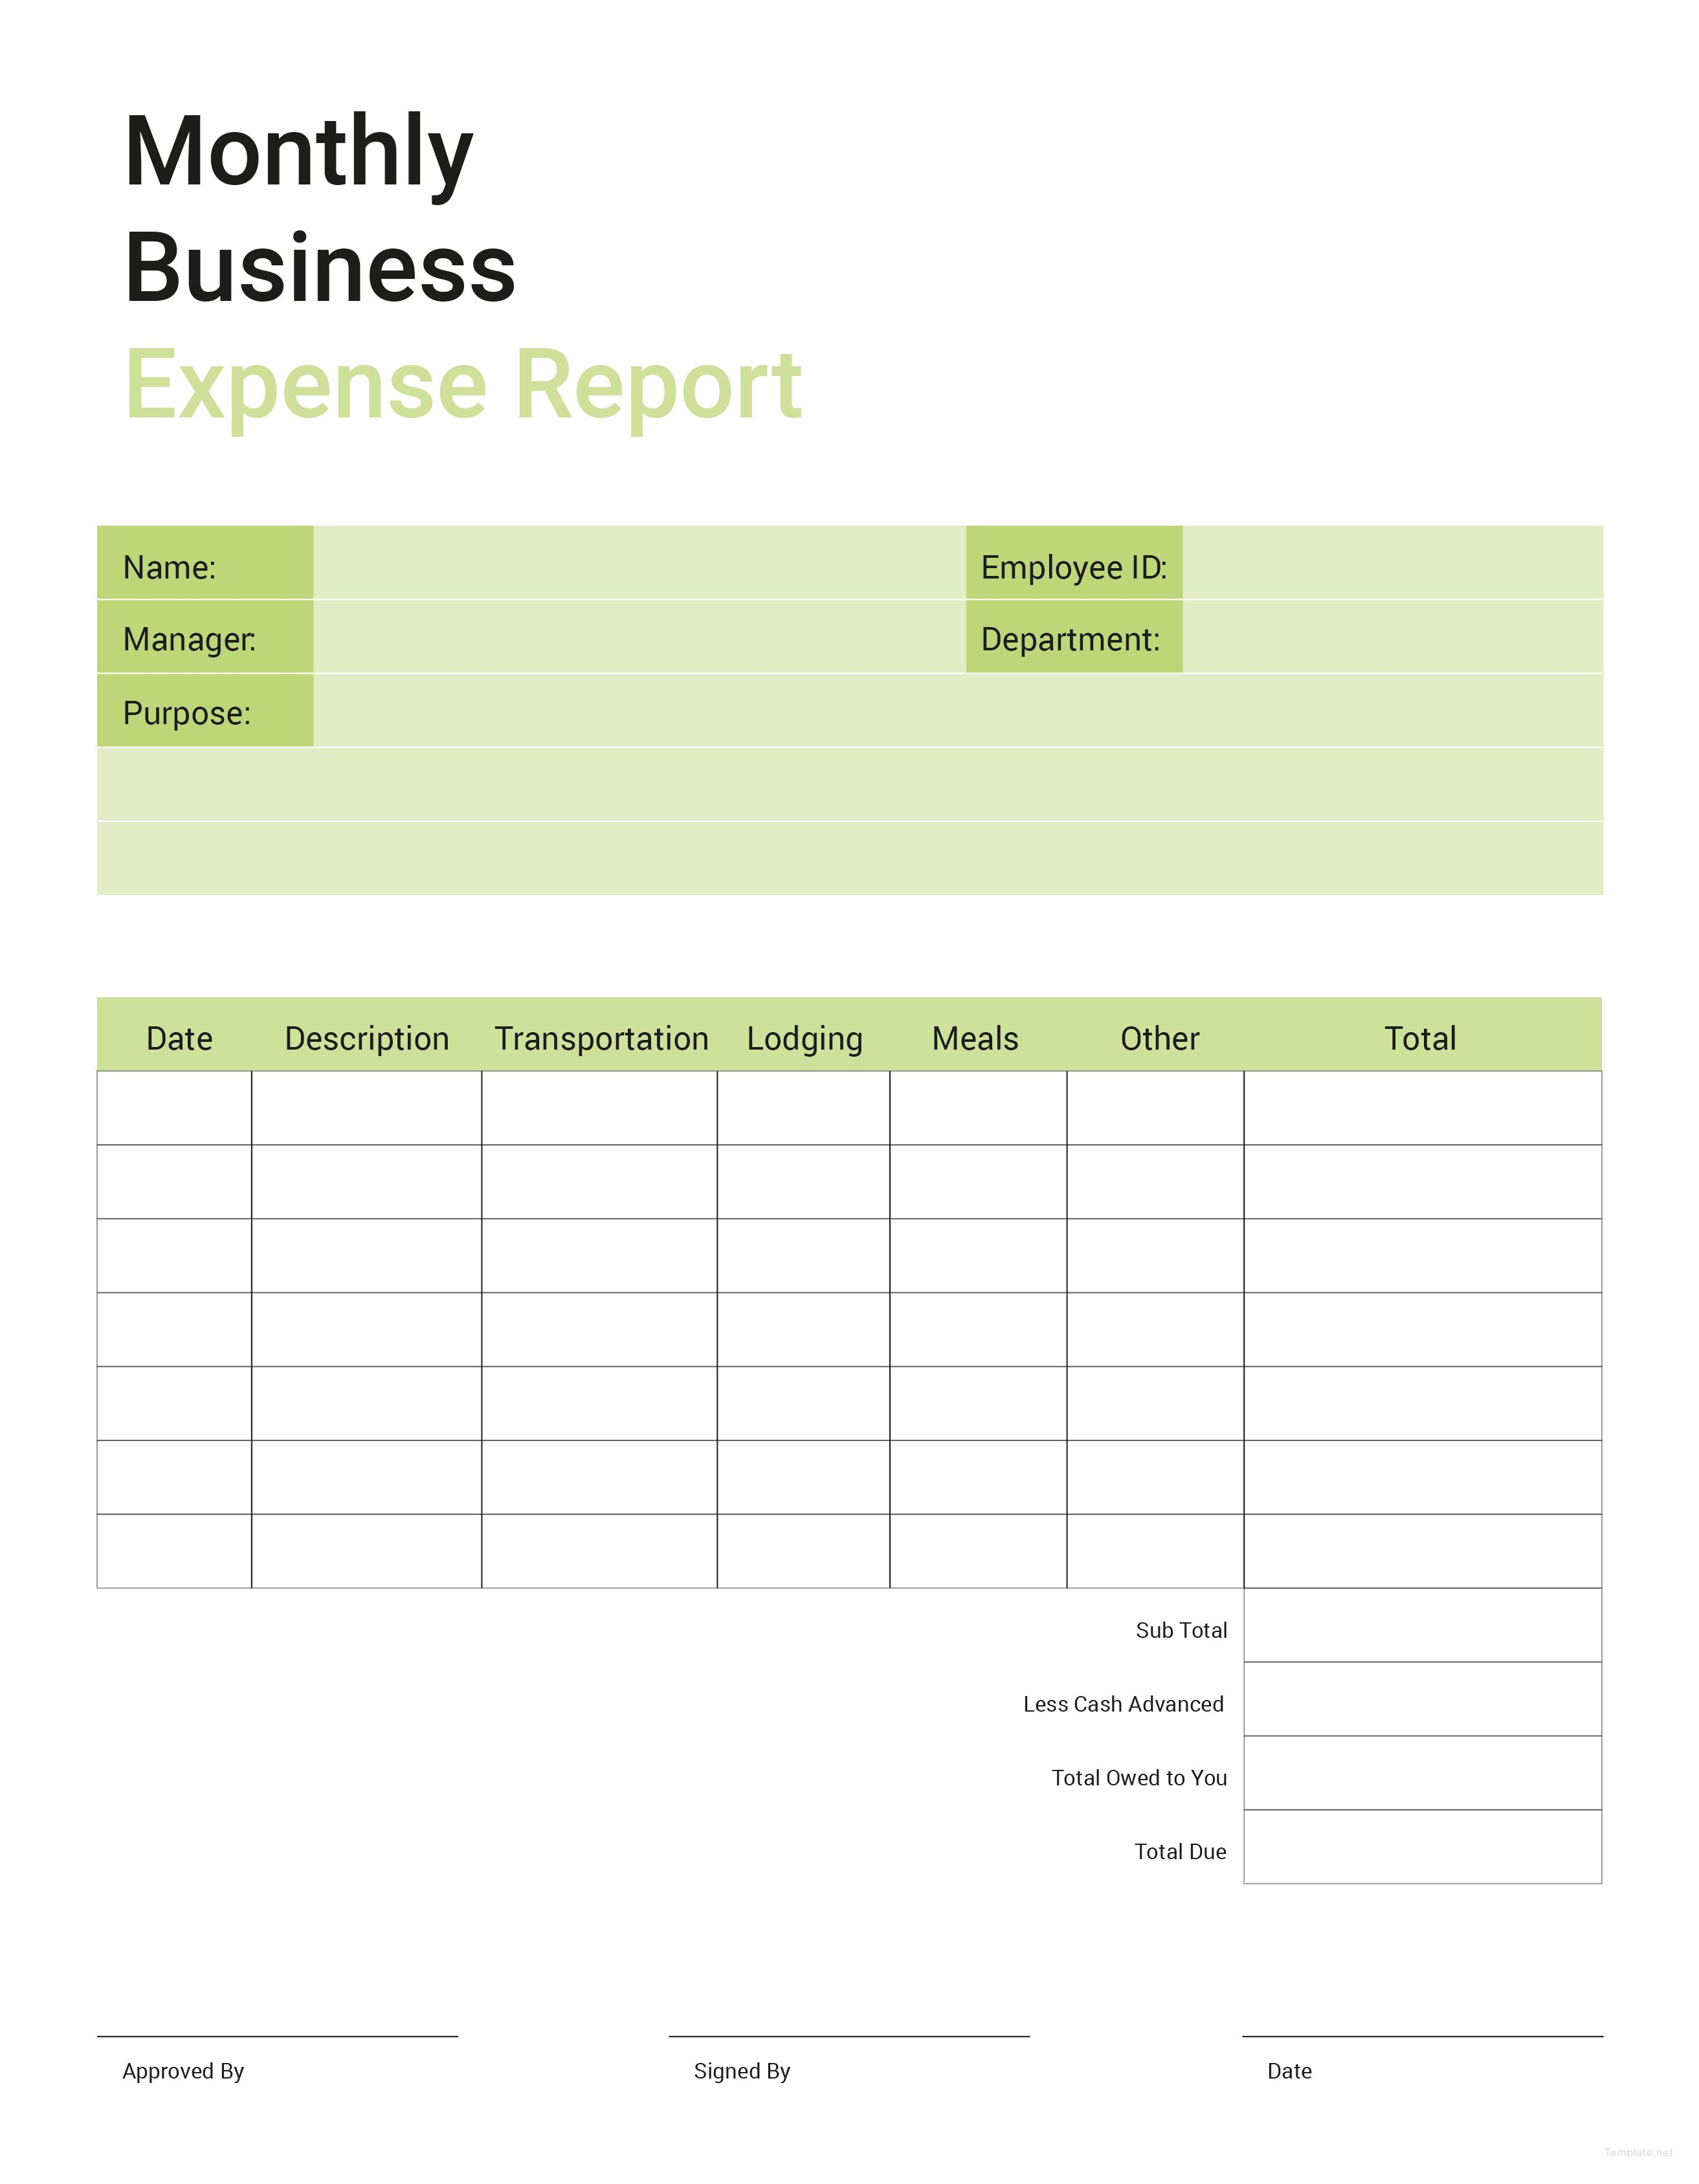 Monthly Expense Report Download Business Expense Report Template For Free In Illustrator .